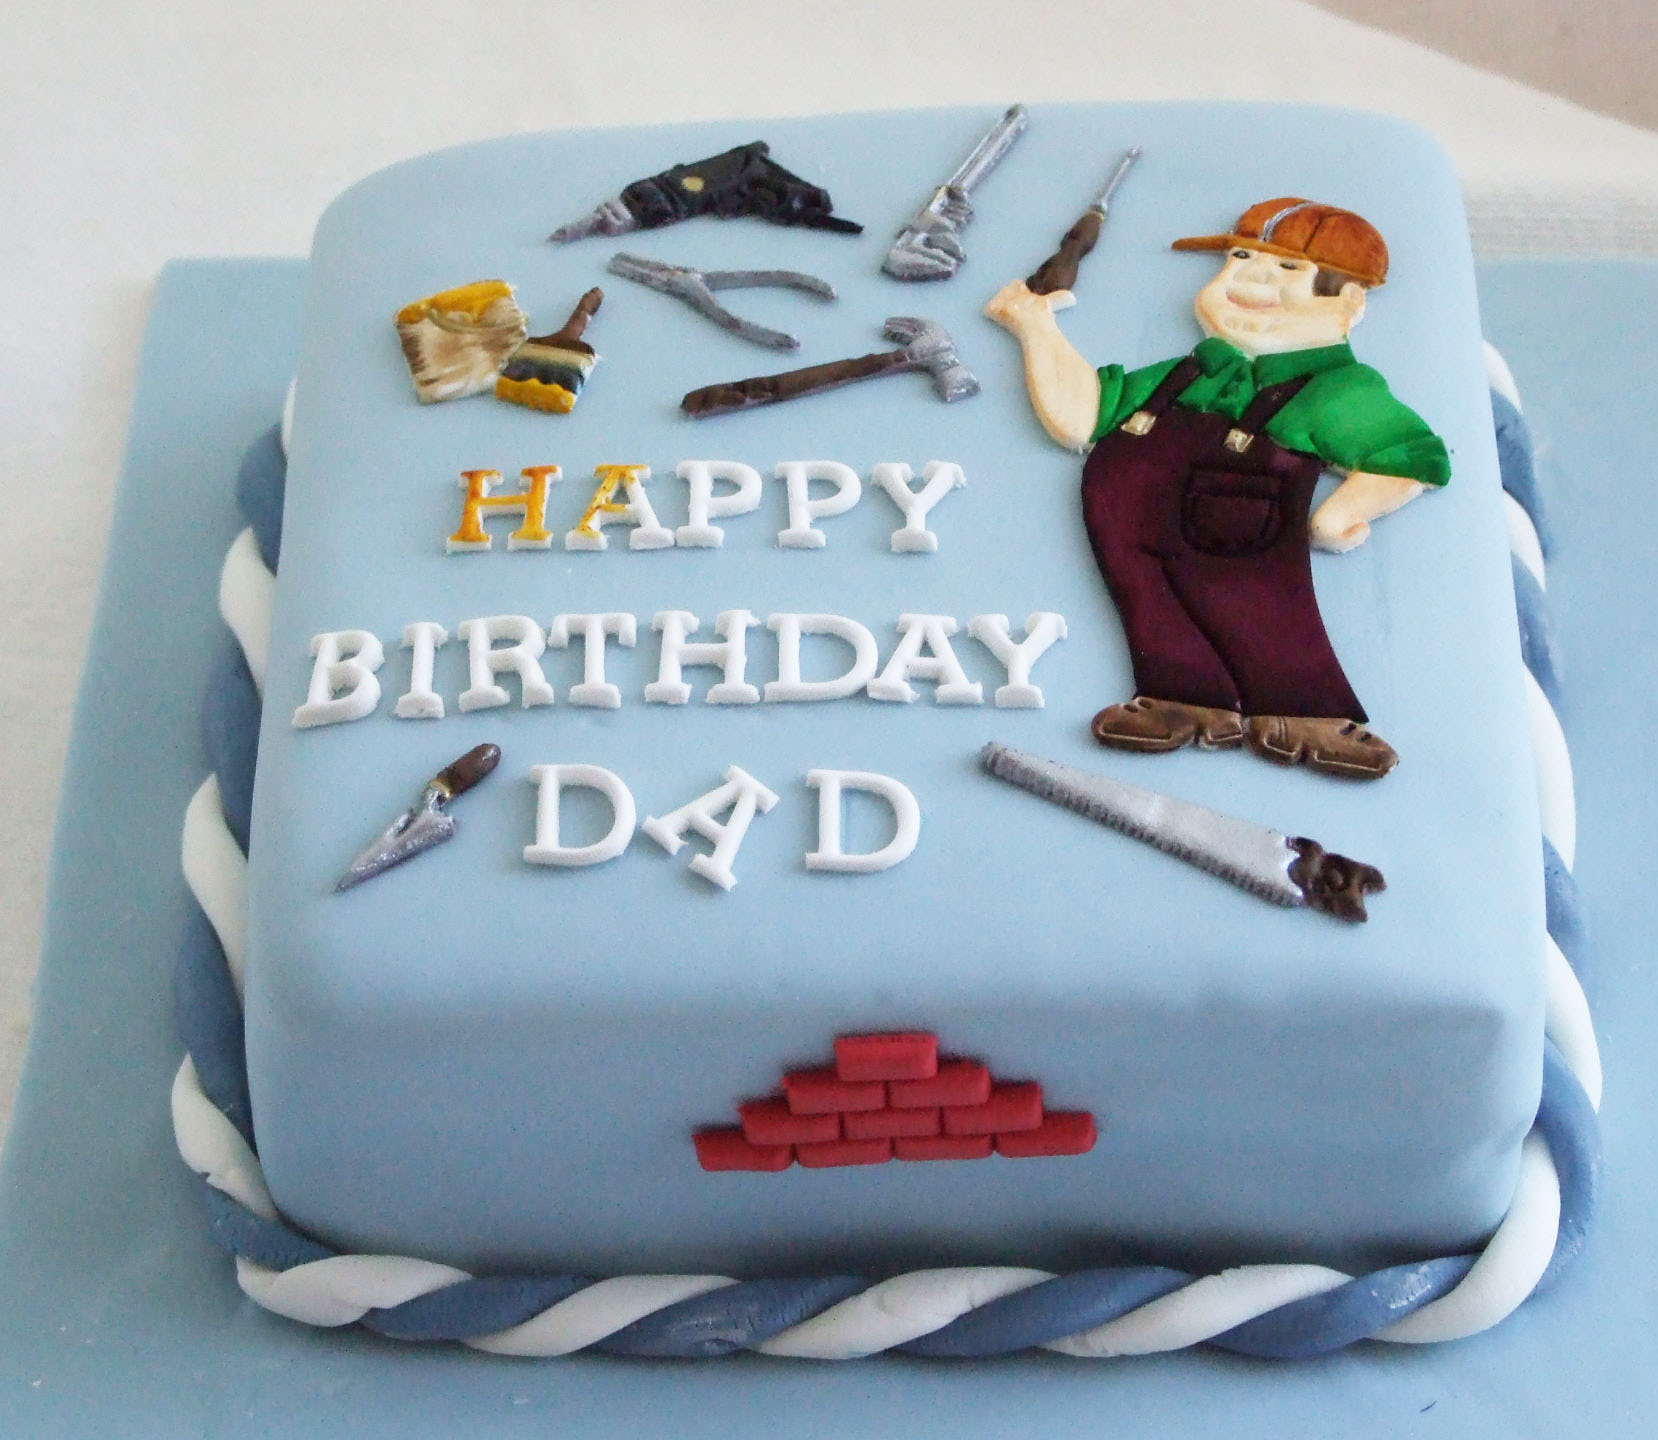 Astonishing Special Birthday Cake For Father Top Birthday Cake Pictures Personalised Birthday Cards Paralily Jamesorg